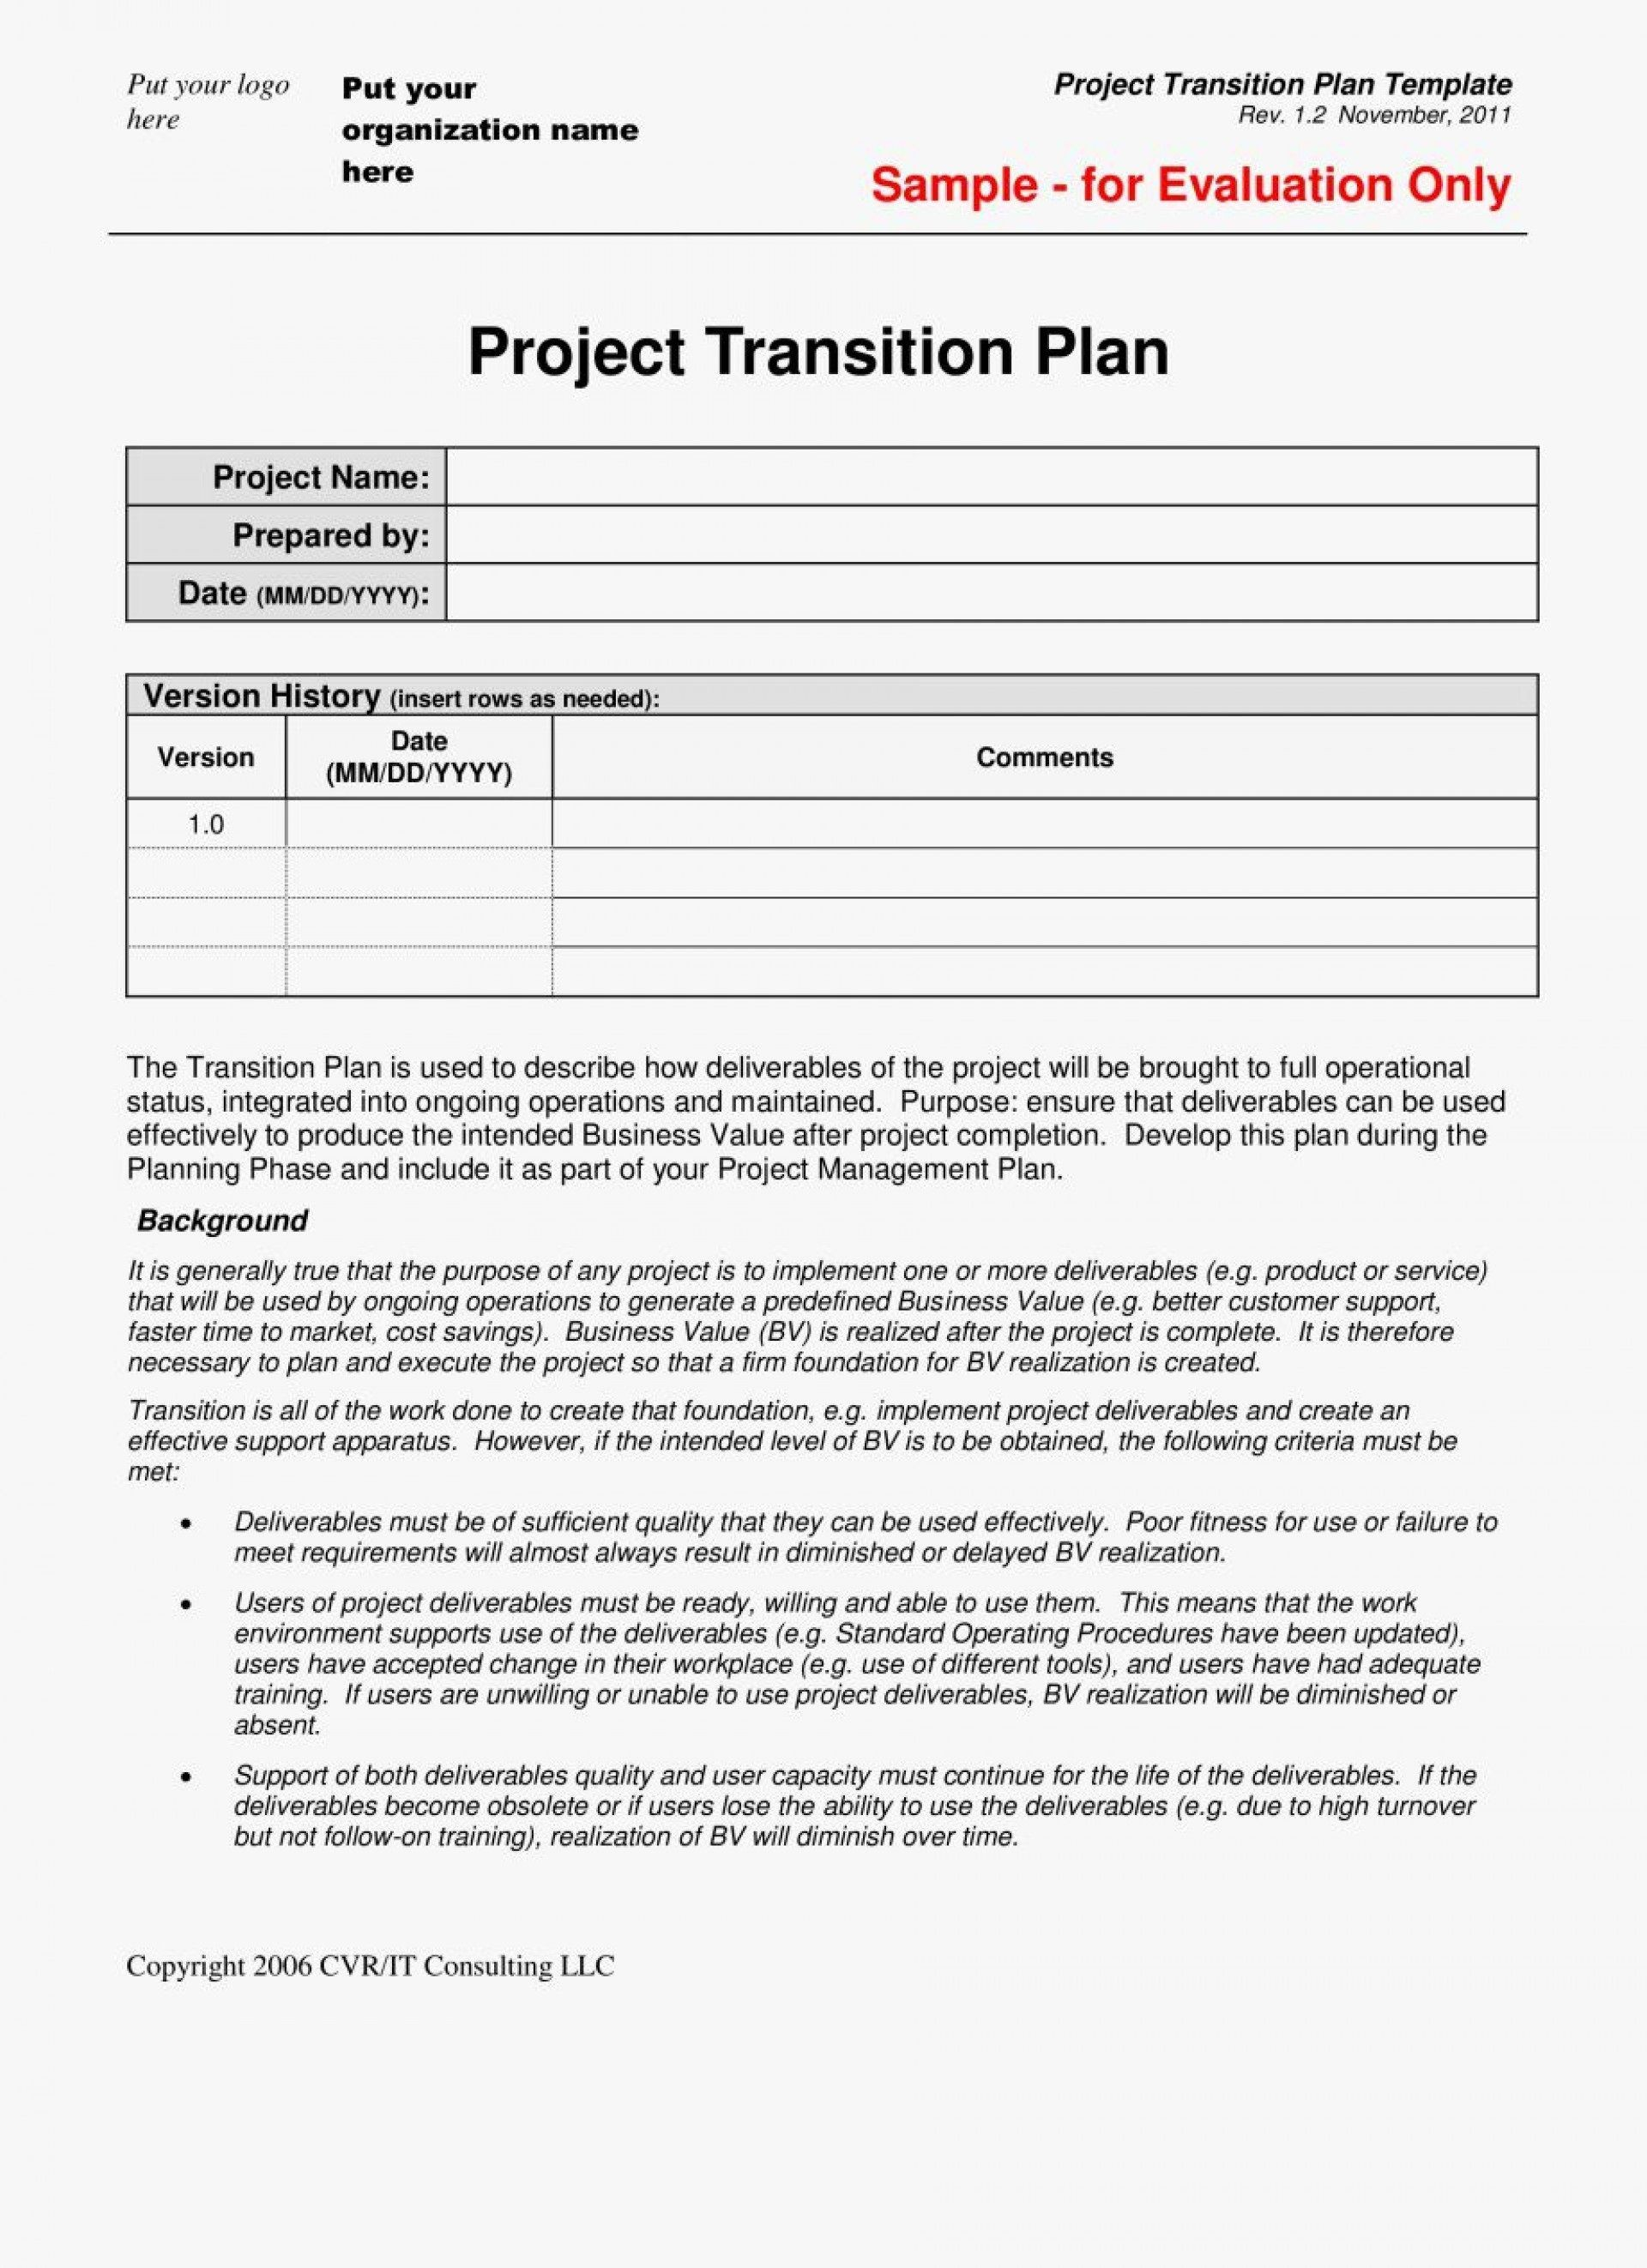 009 Stunning Project Transition Plan Sample High Def  Template Ppt Out1920